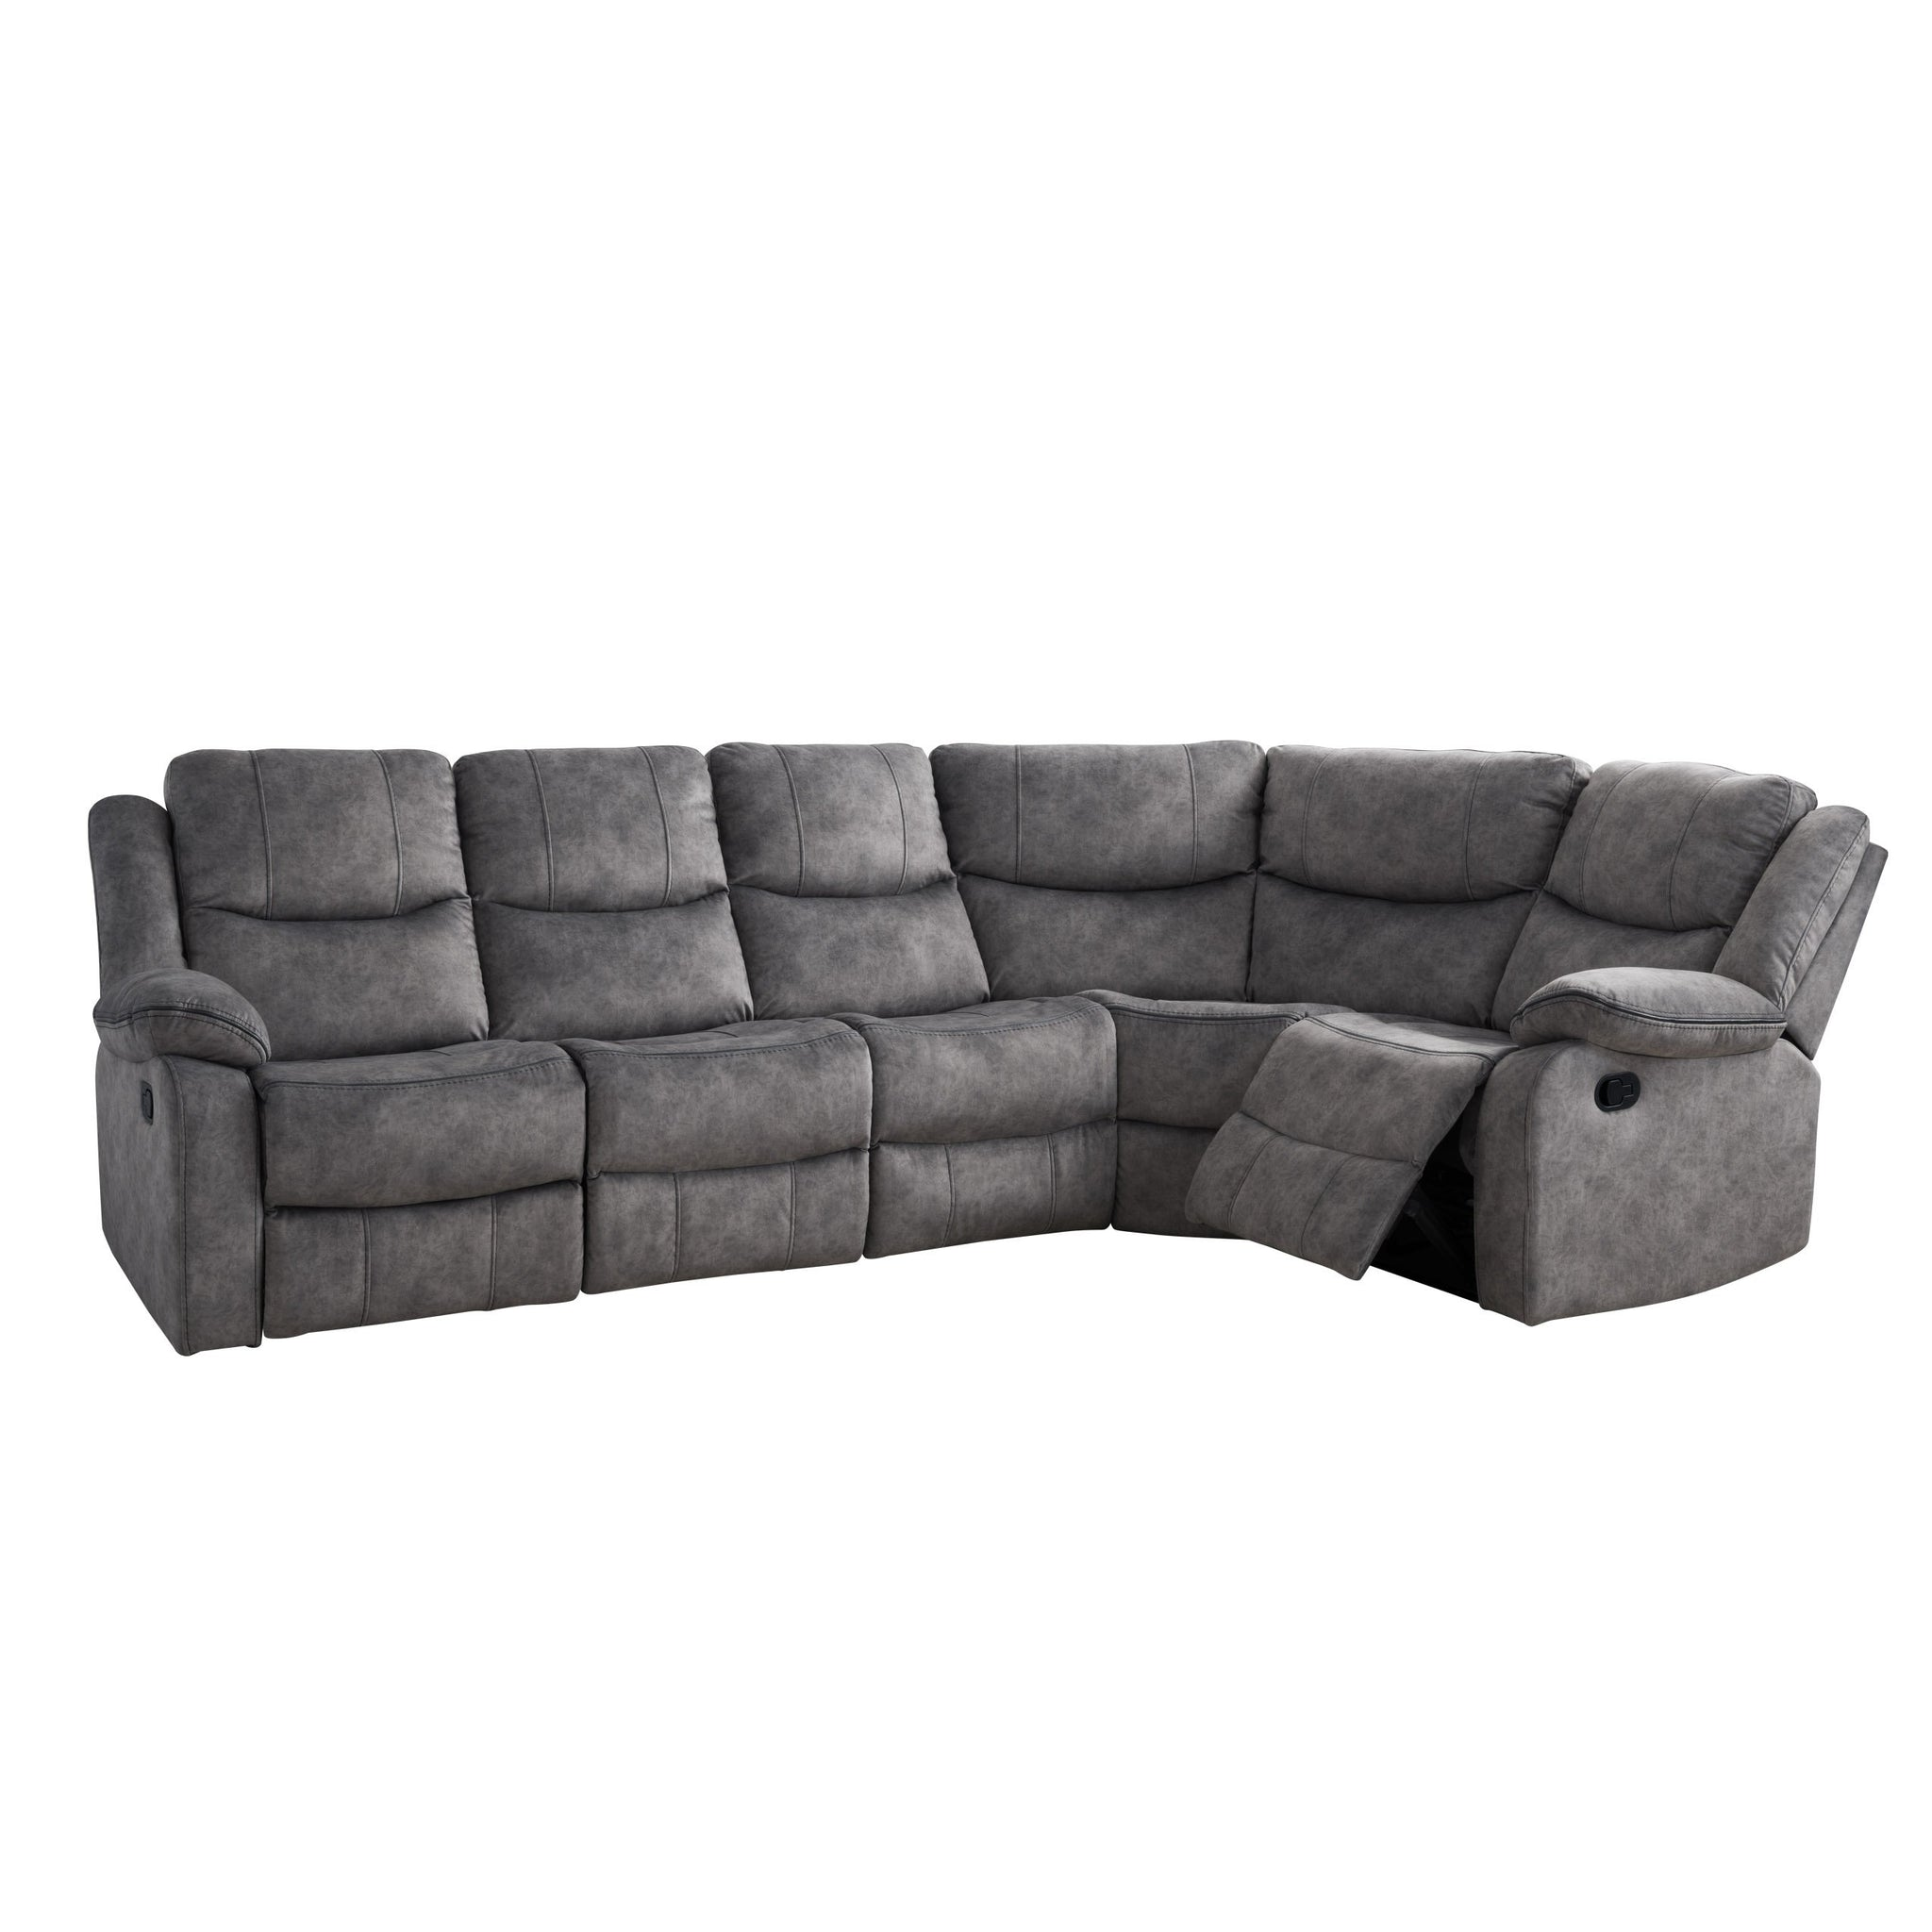 Syracuse Curved Modular Reclining Sofa Sectional Fabric 5pc Corliving Furniture Us